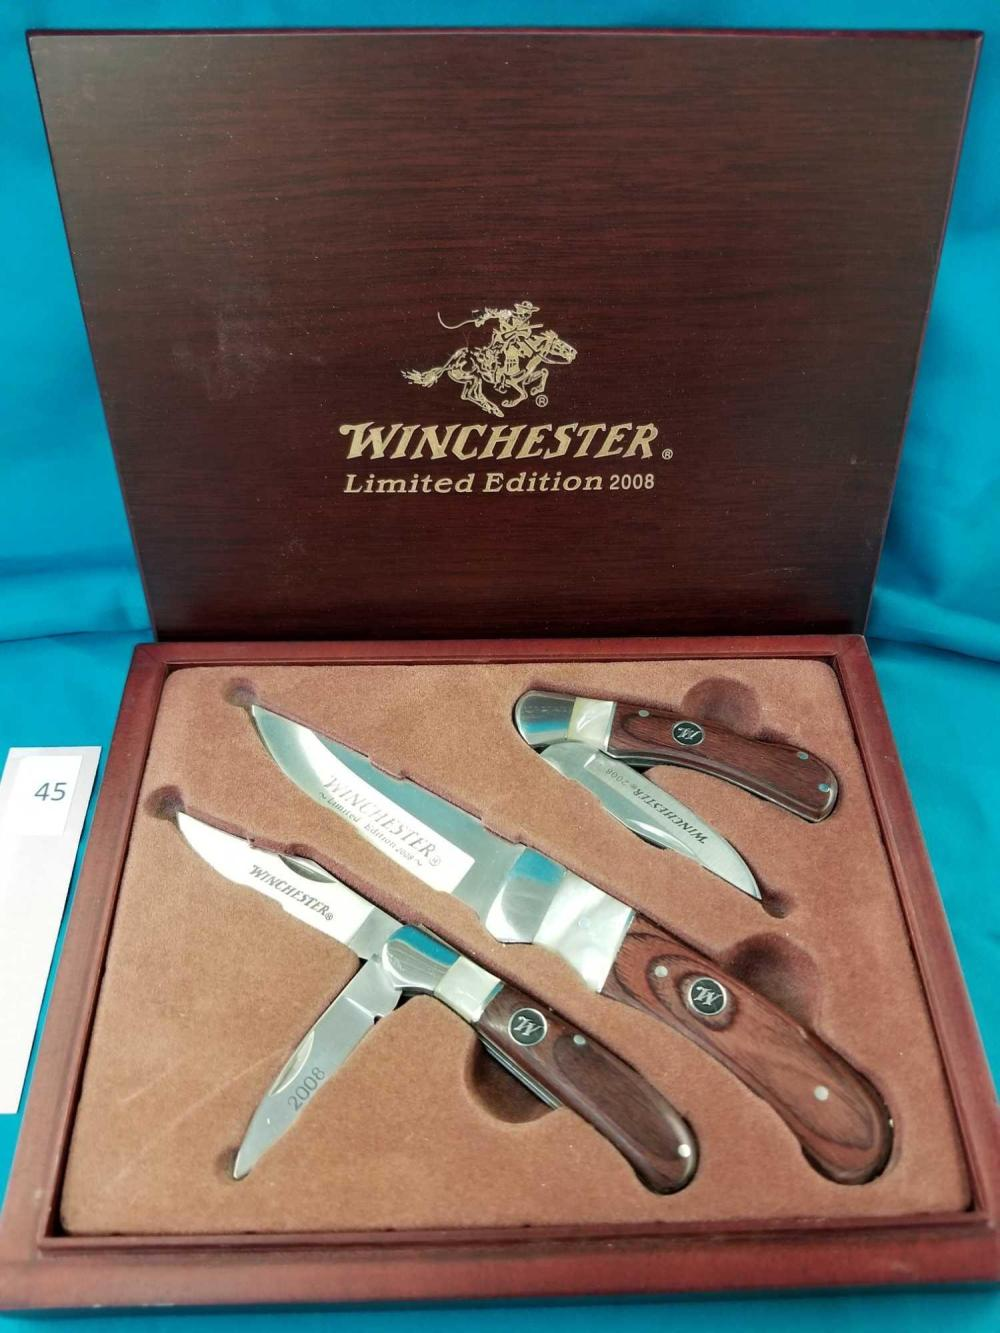 WINCHESTER 2008 LIMITED EDITION 3 KNIFE SET IN A WOODEN BOX